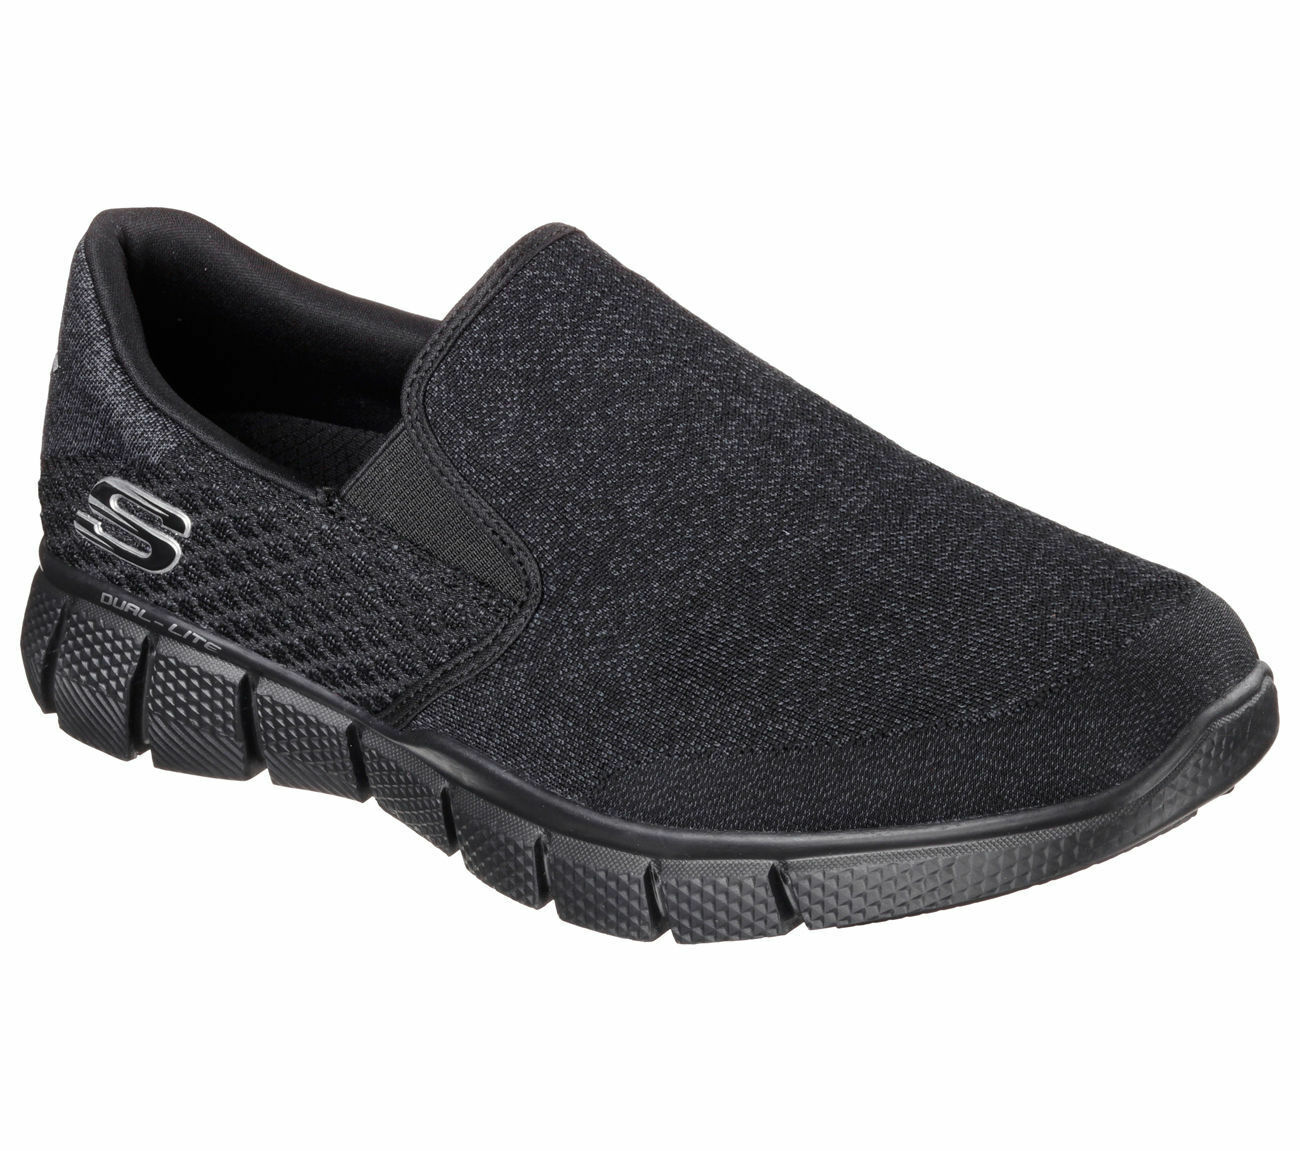 Black Men's Skechers Shoes 51521 Extra Wide Memory Foam Comfort Slip On Casual